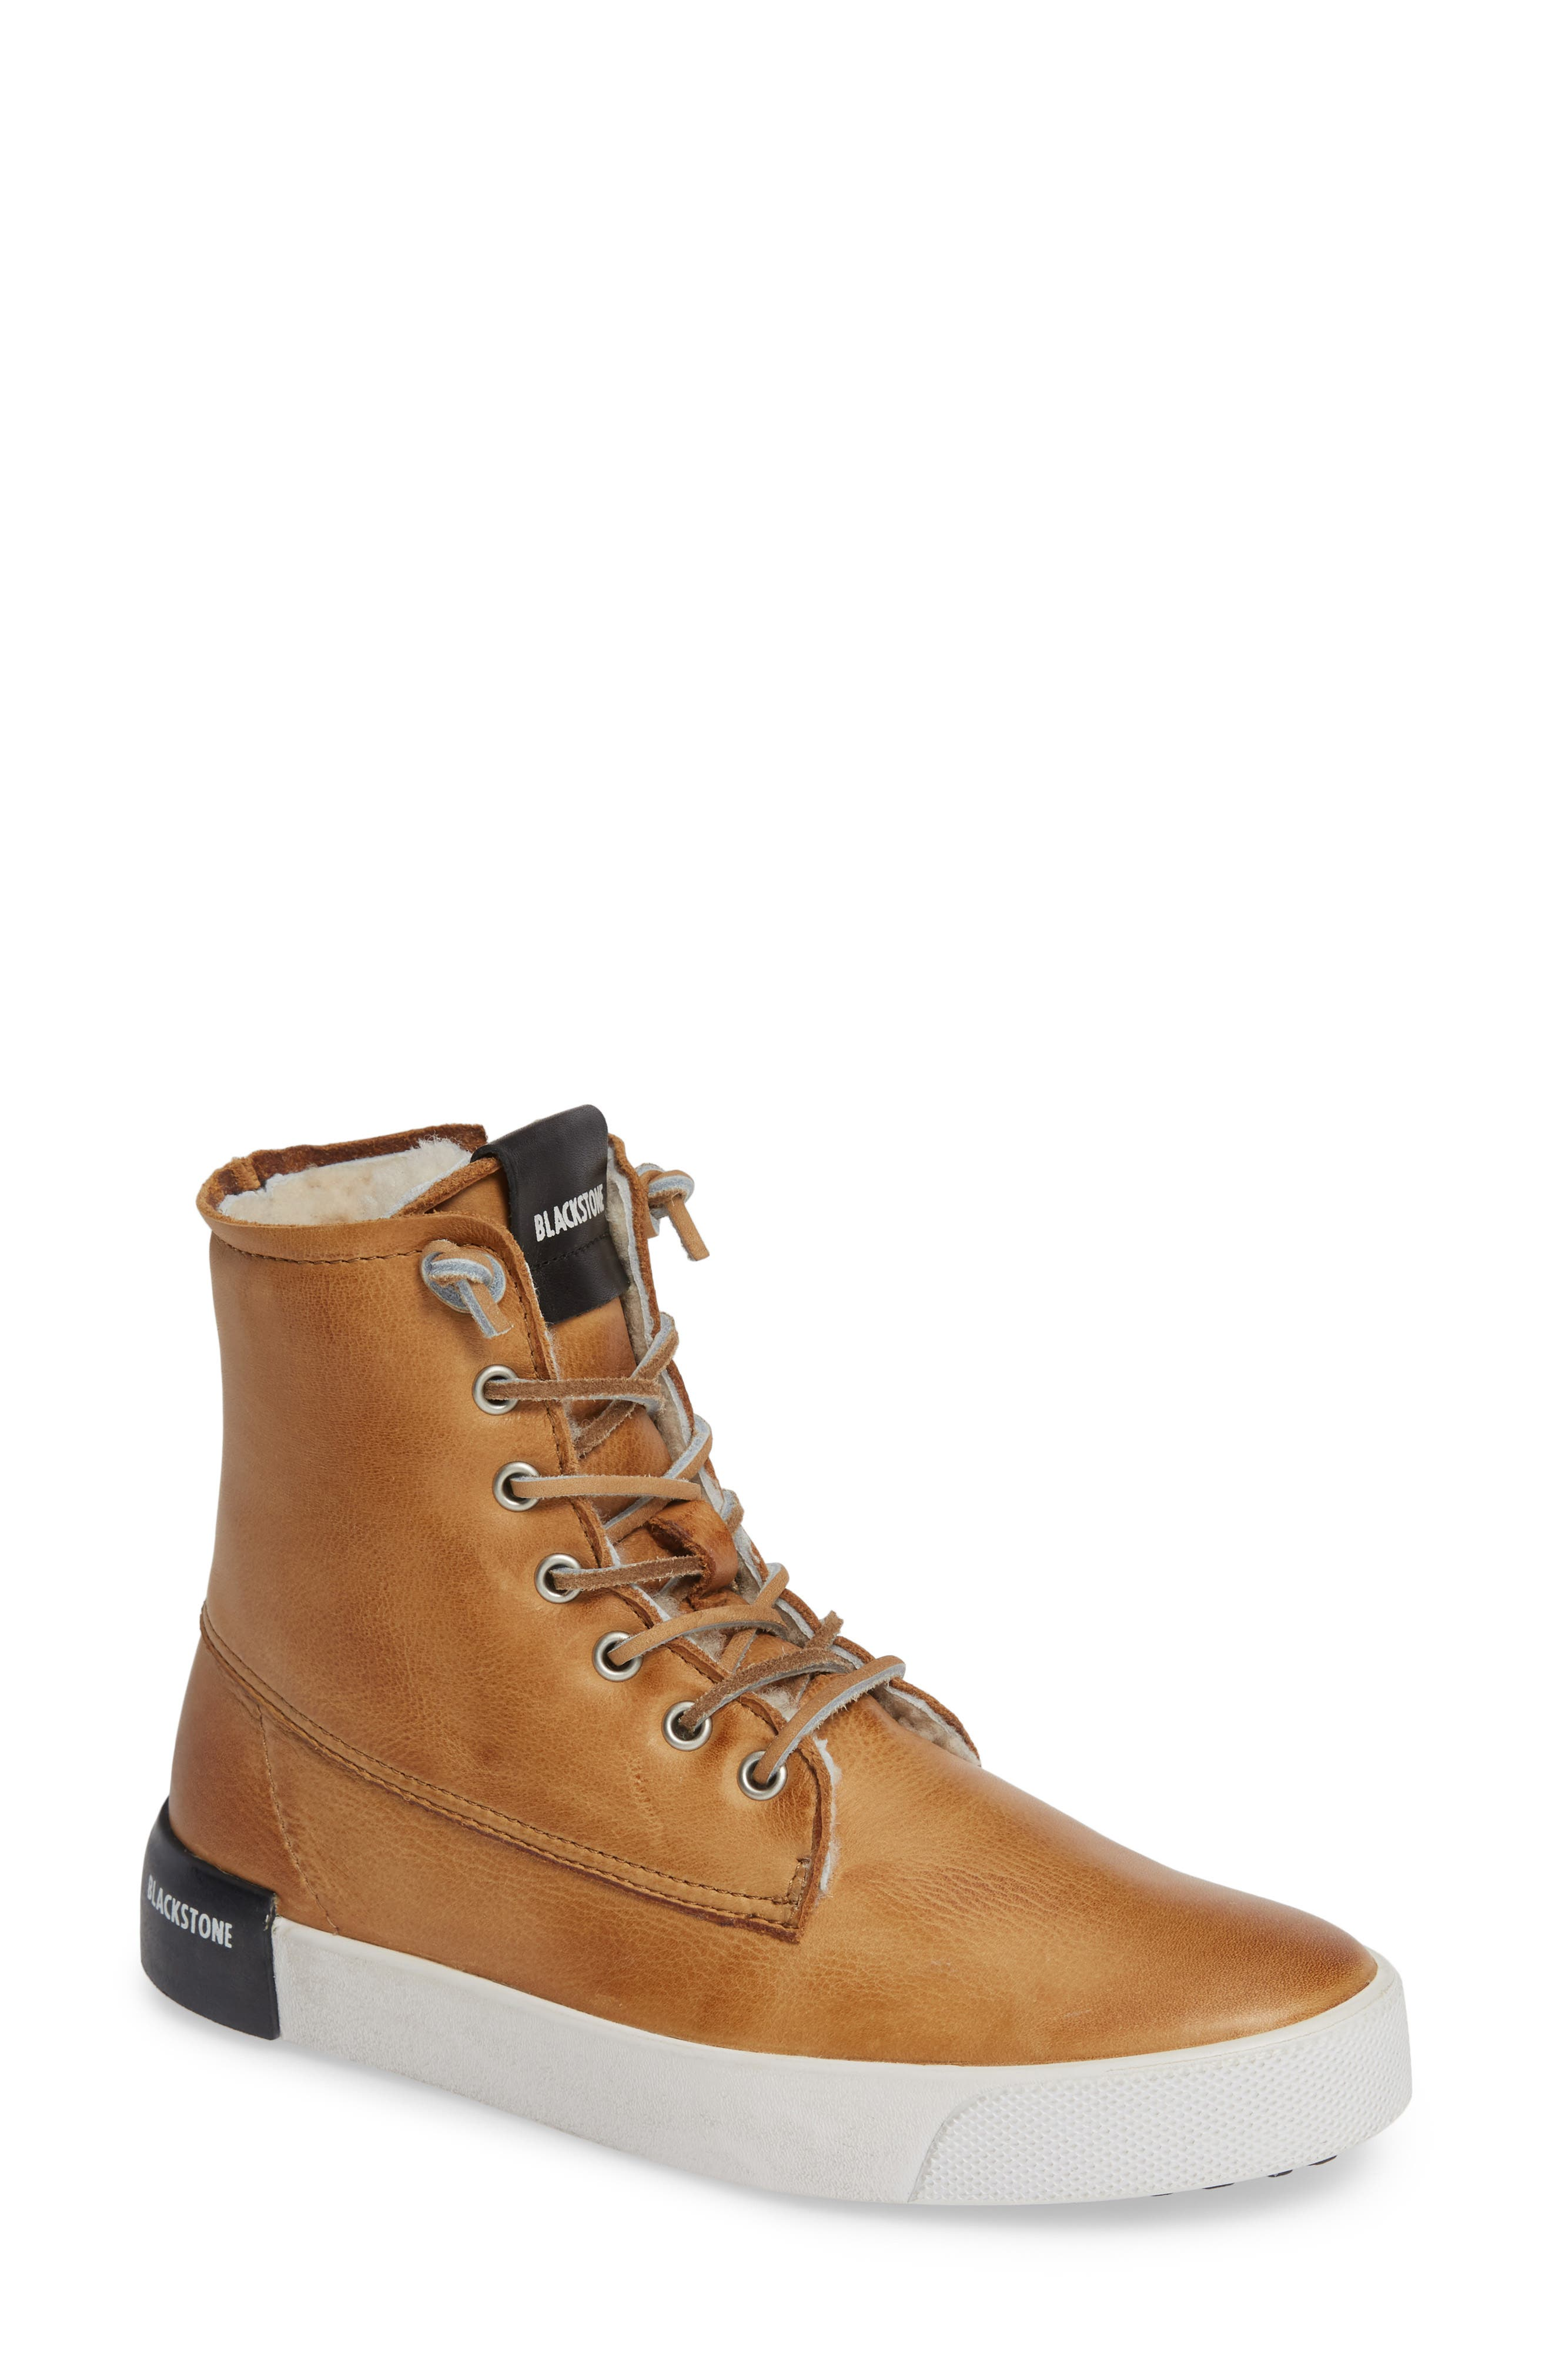 Blackstone Ql41 High Top Sneaker With Genuine Shearling Lining, Brown